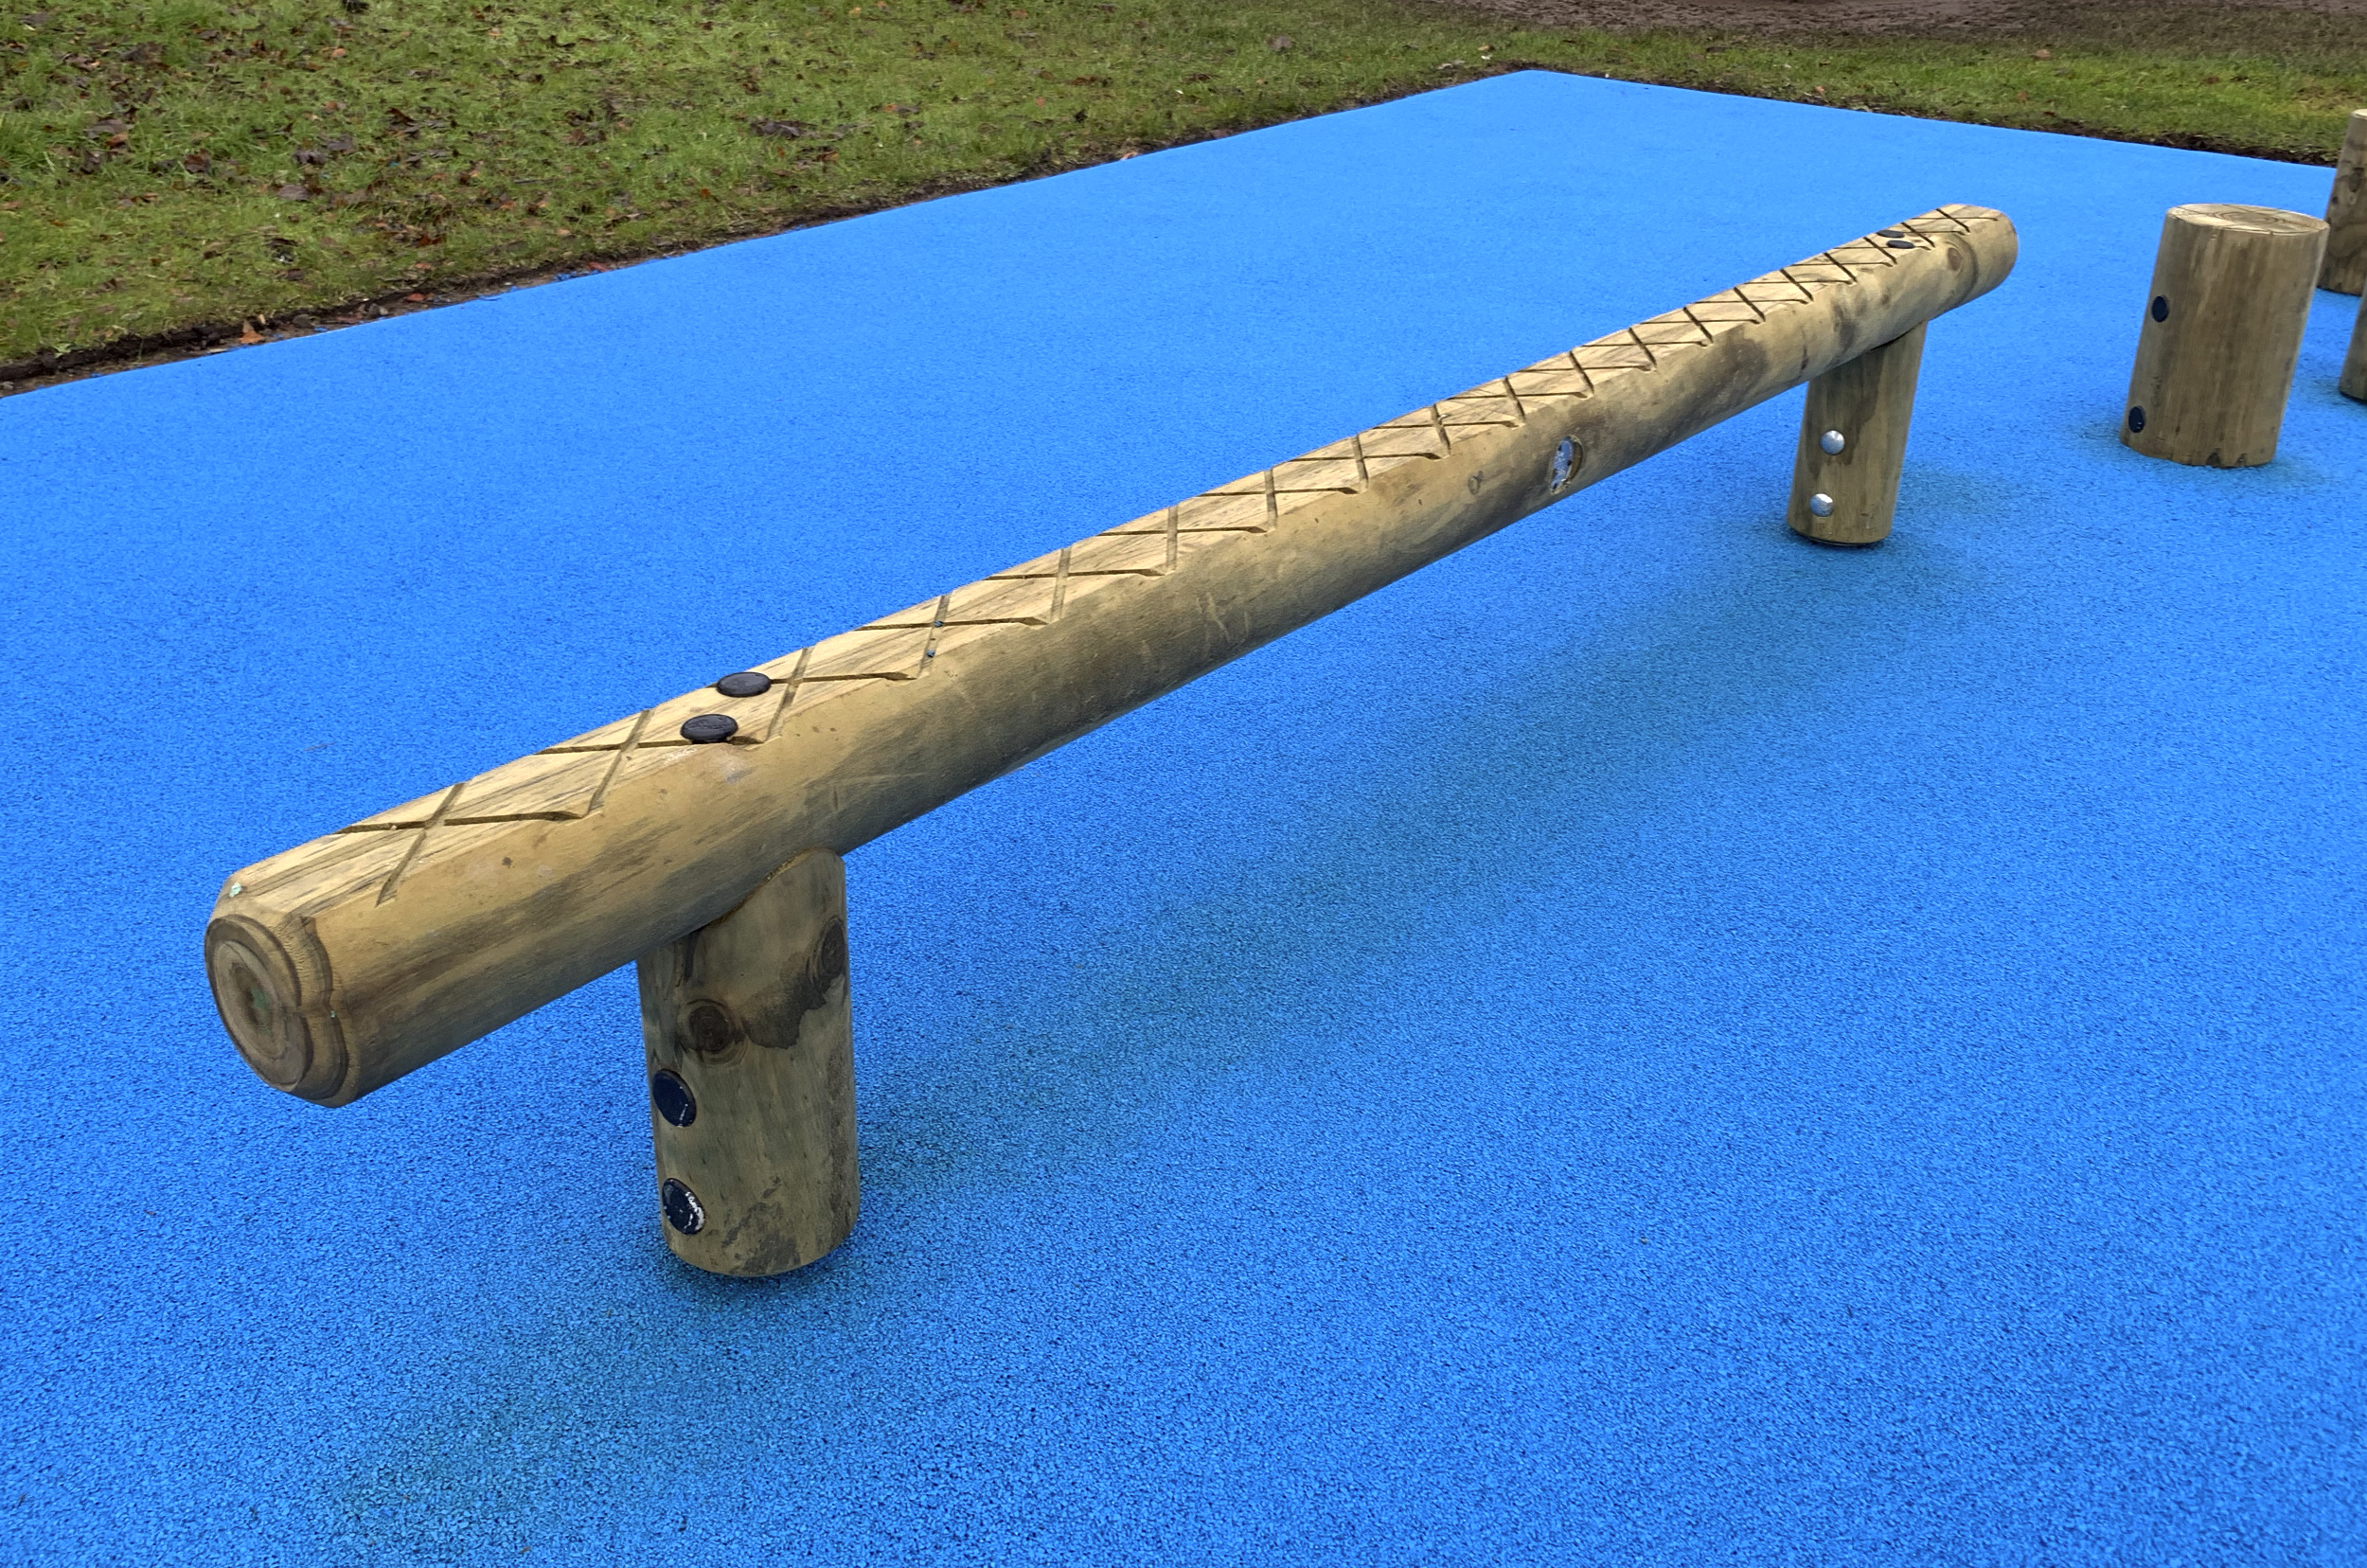 The timber balance walk sits on blue wetpour with Cross hatched top